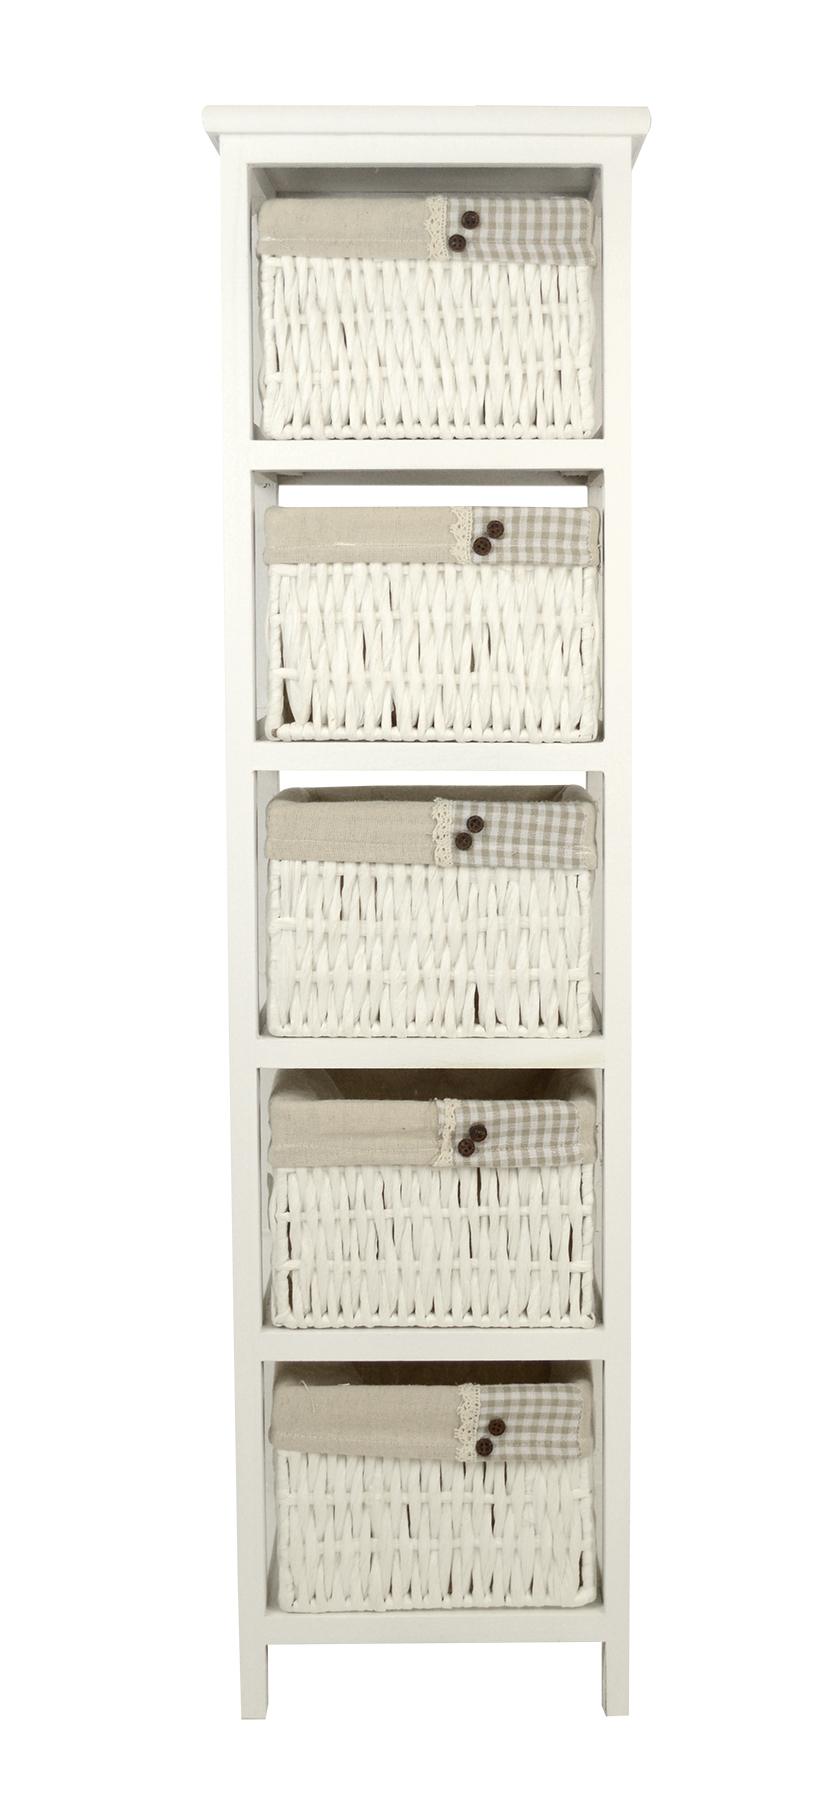 Basket Rack LM1310-5 White